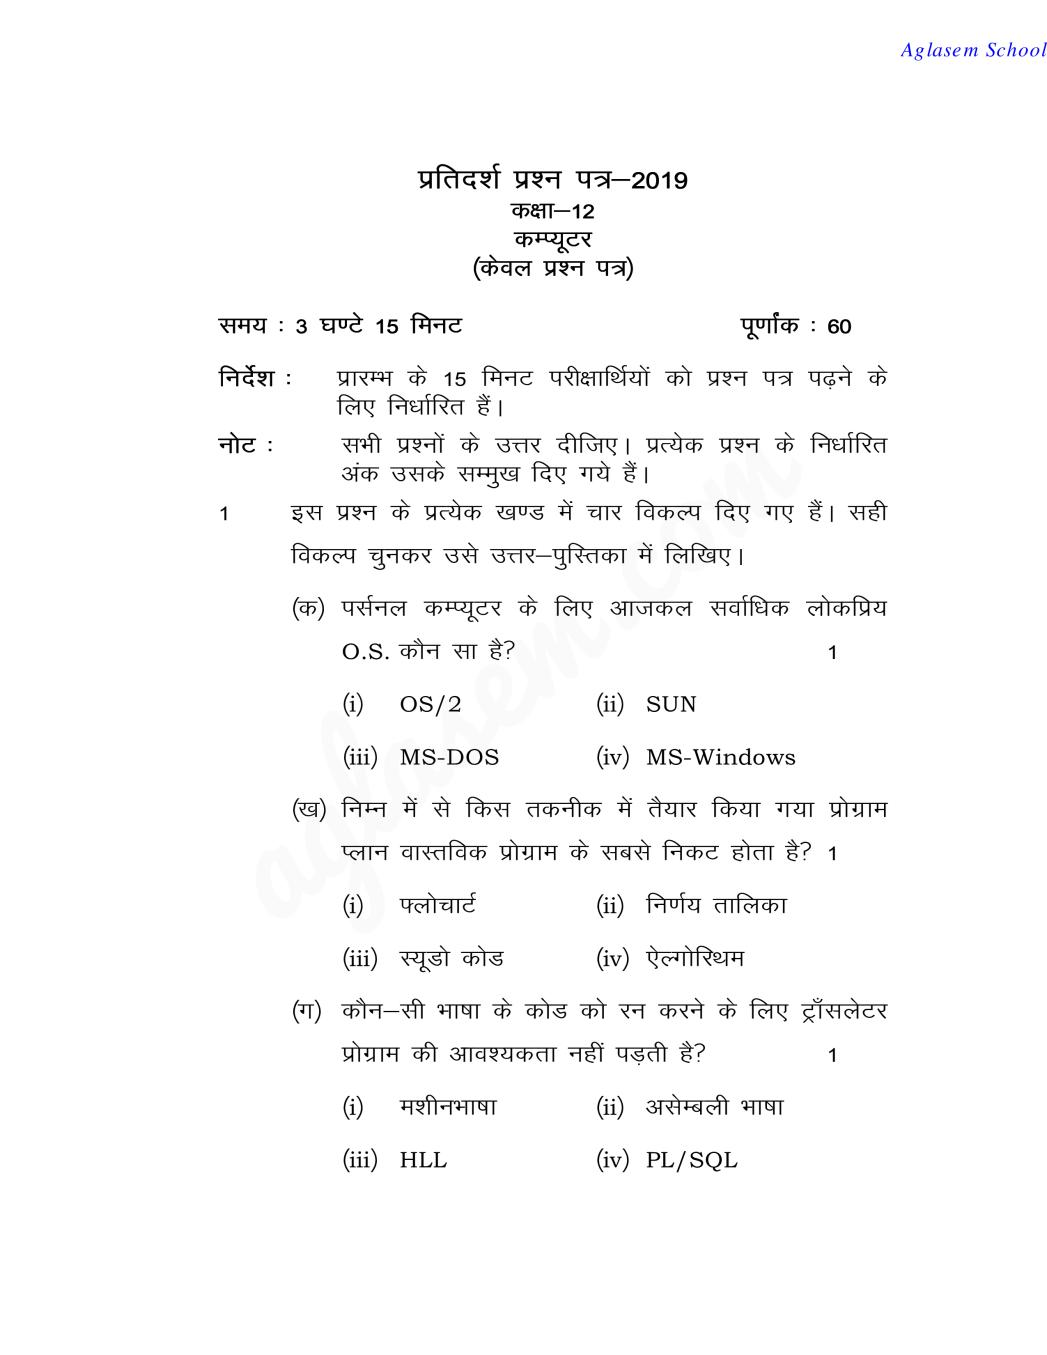 UP Board Model Paper 2020 Class 12th – Computer